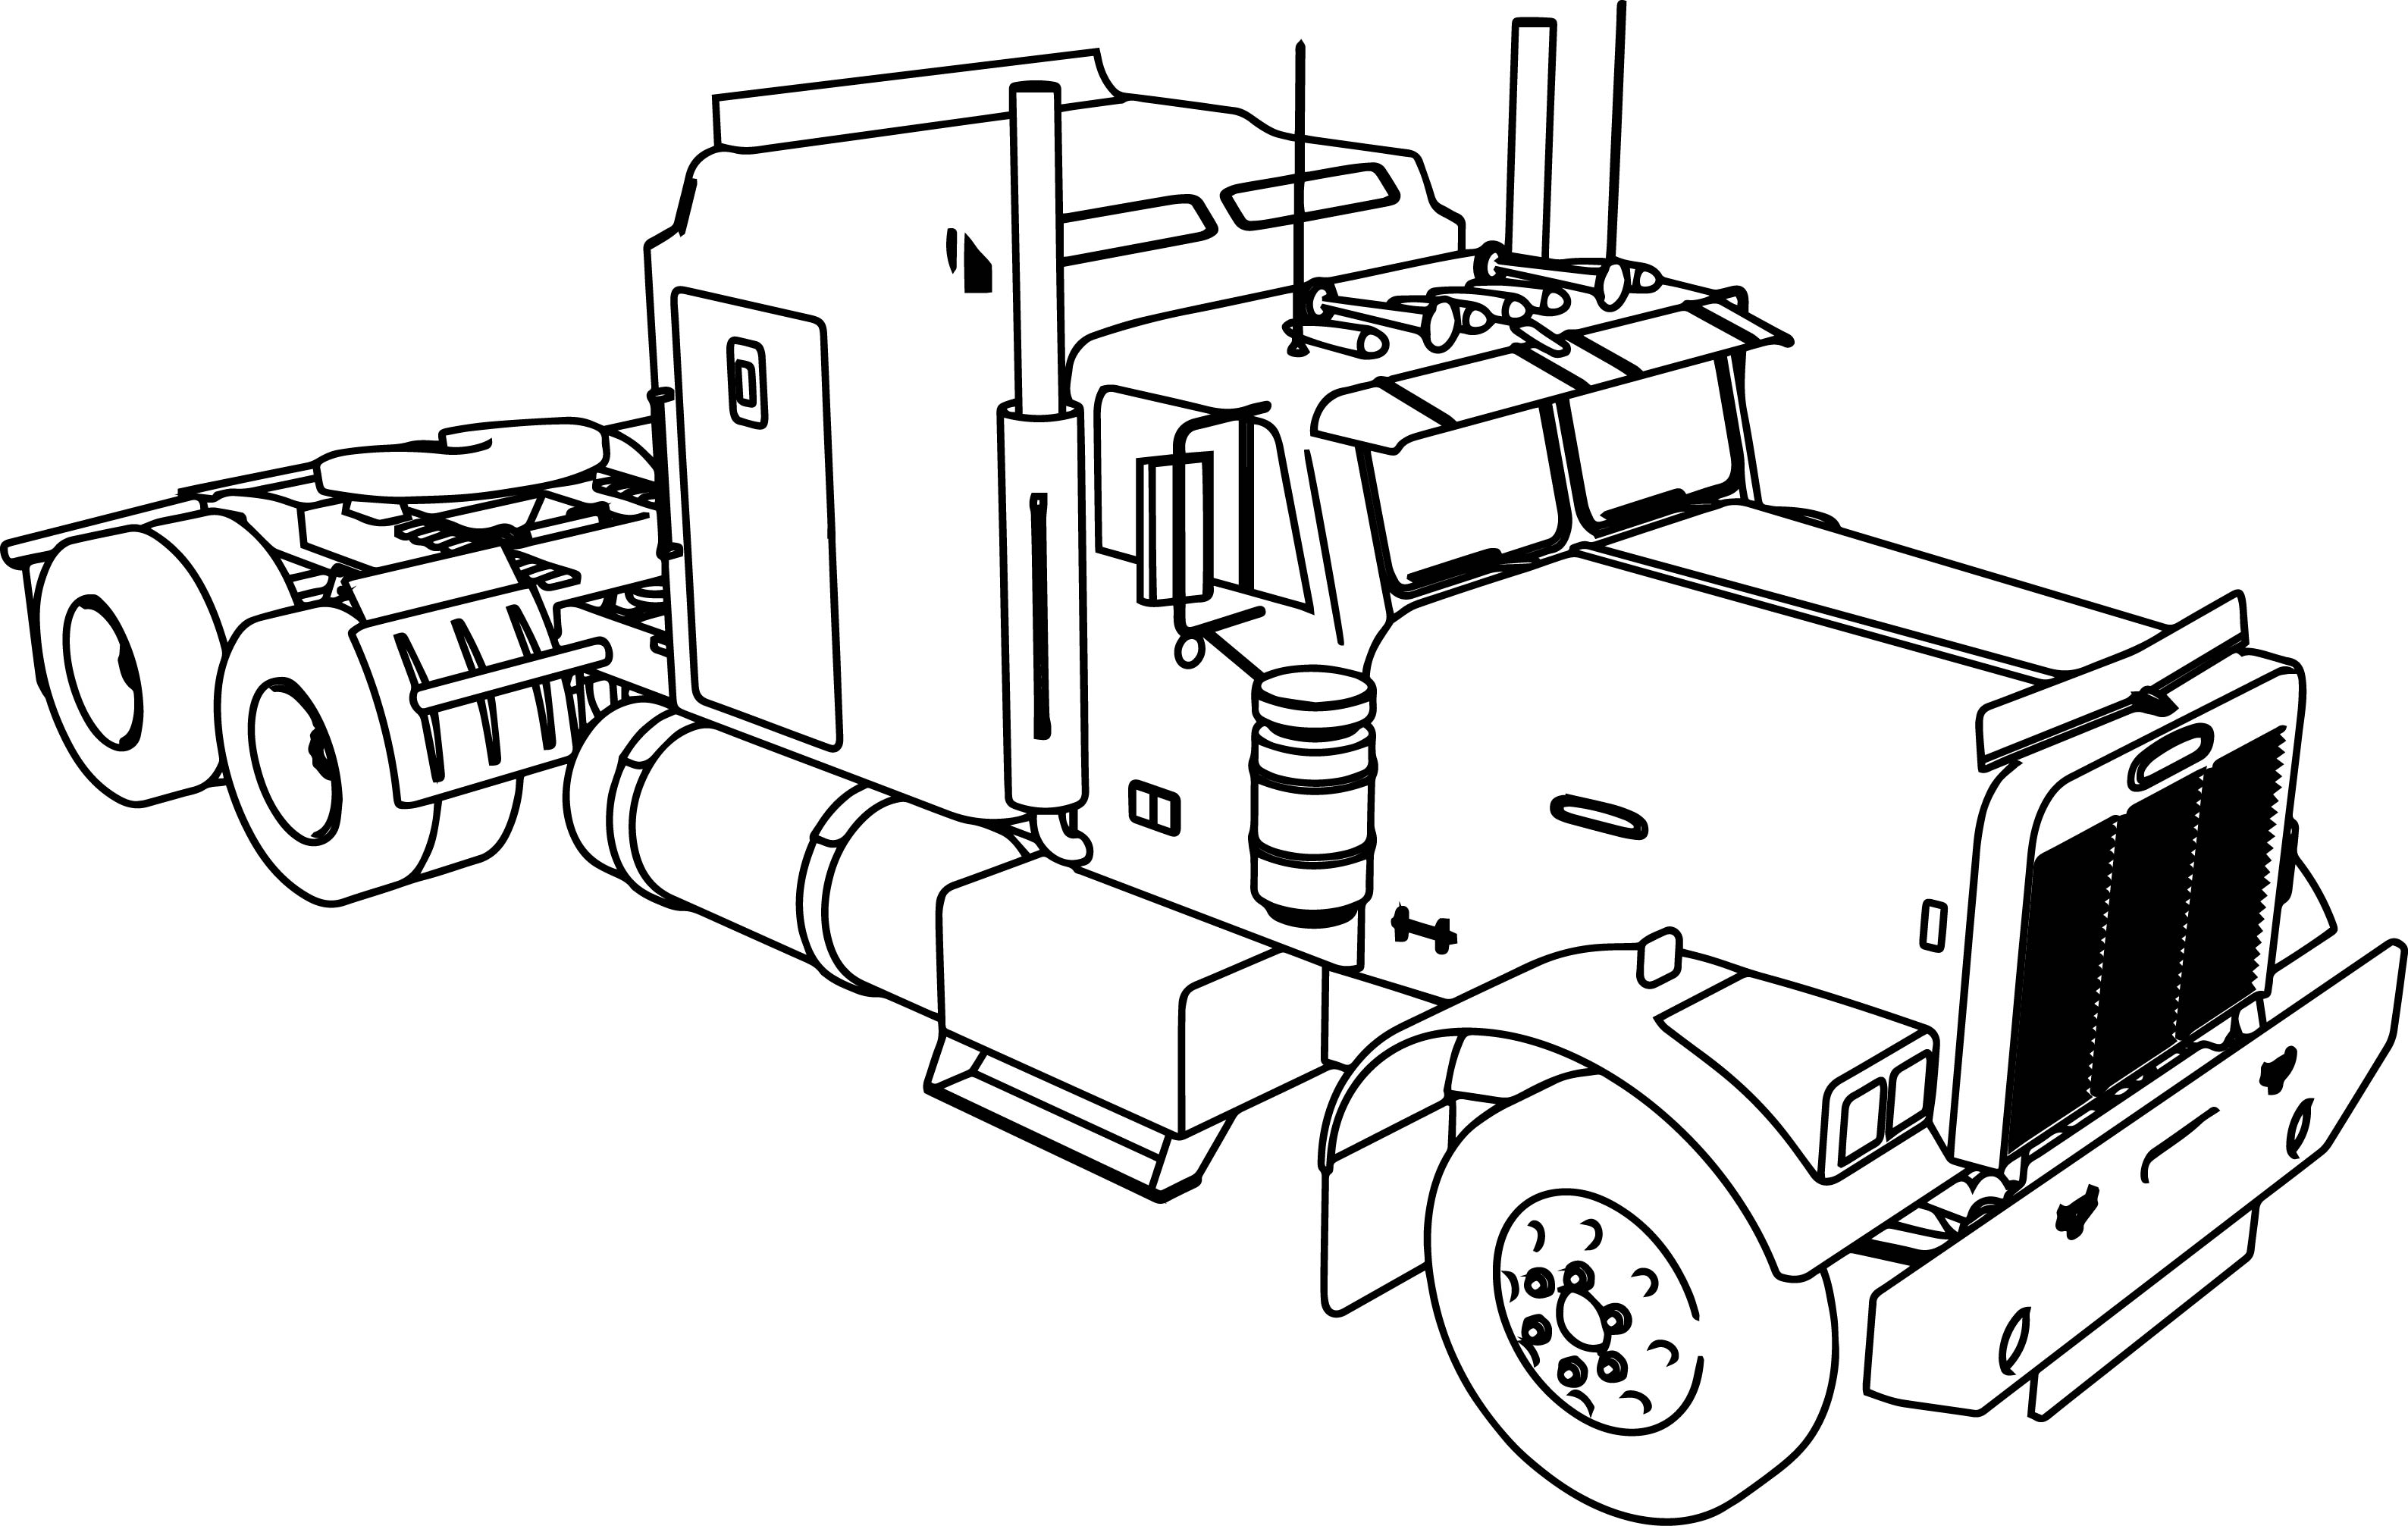 here home semi semi. tractor coloring pages to print tractor ...